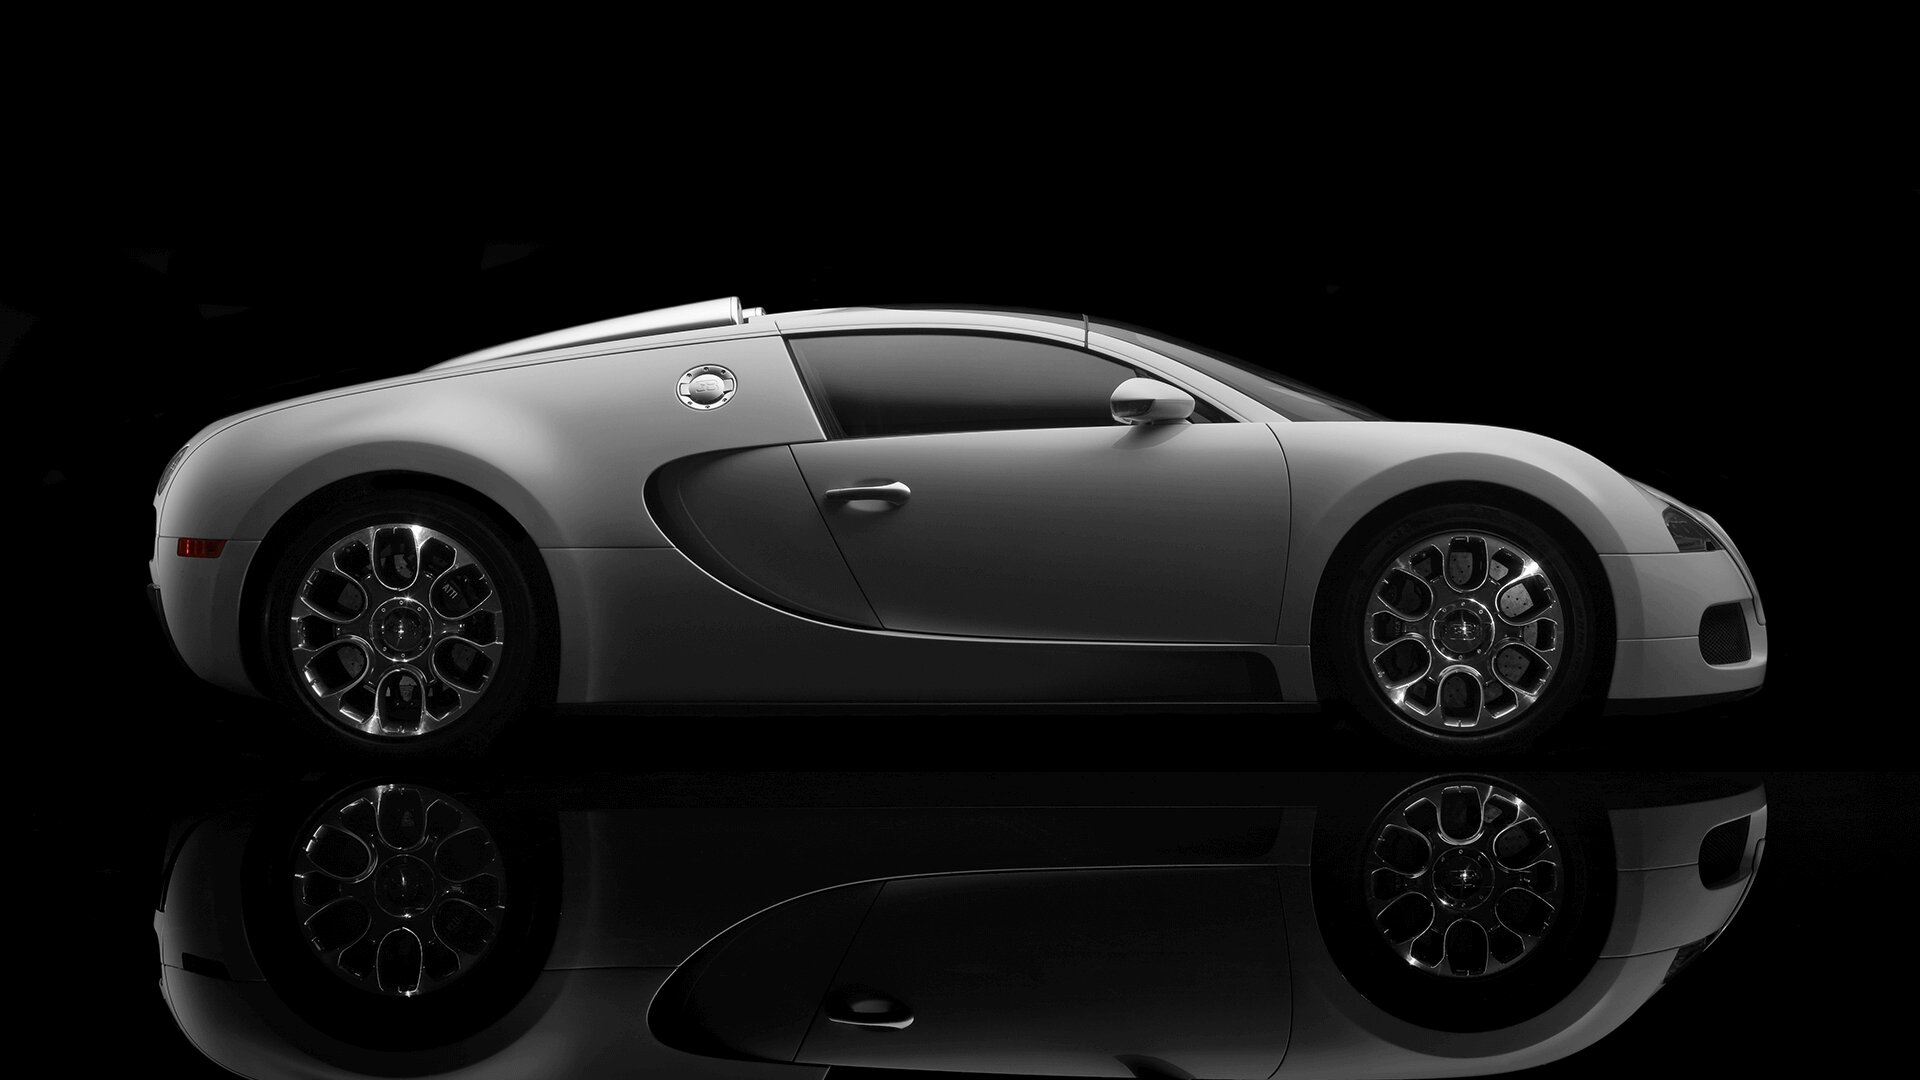 Bugatti Grand Sport Roof closed